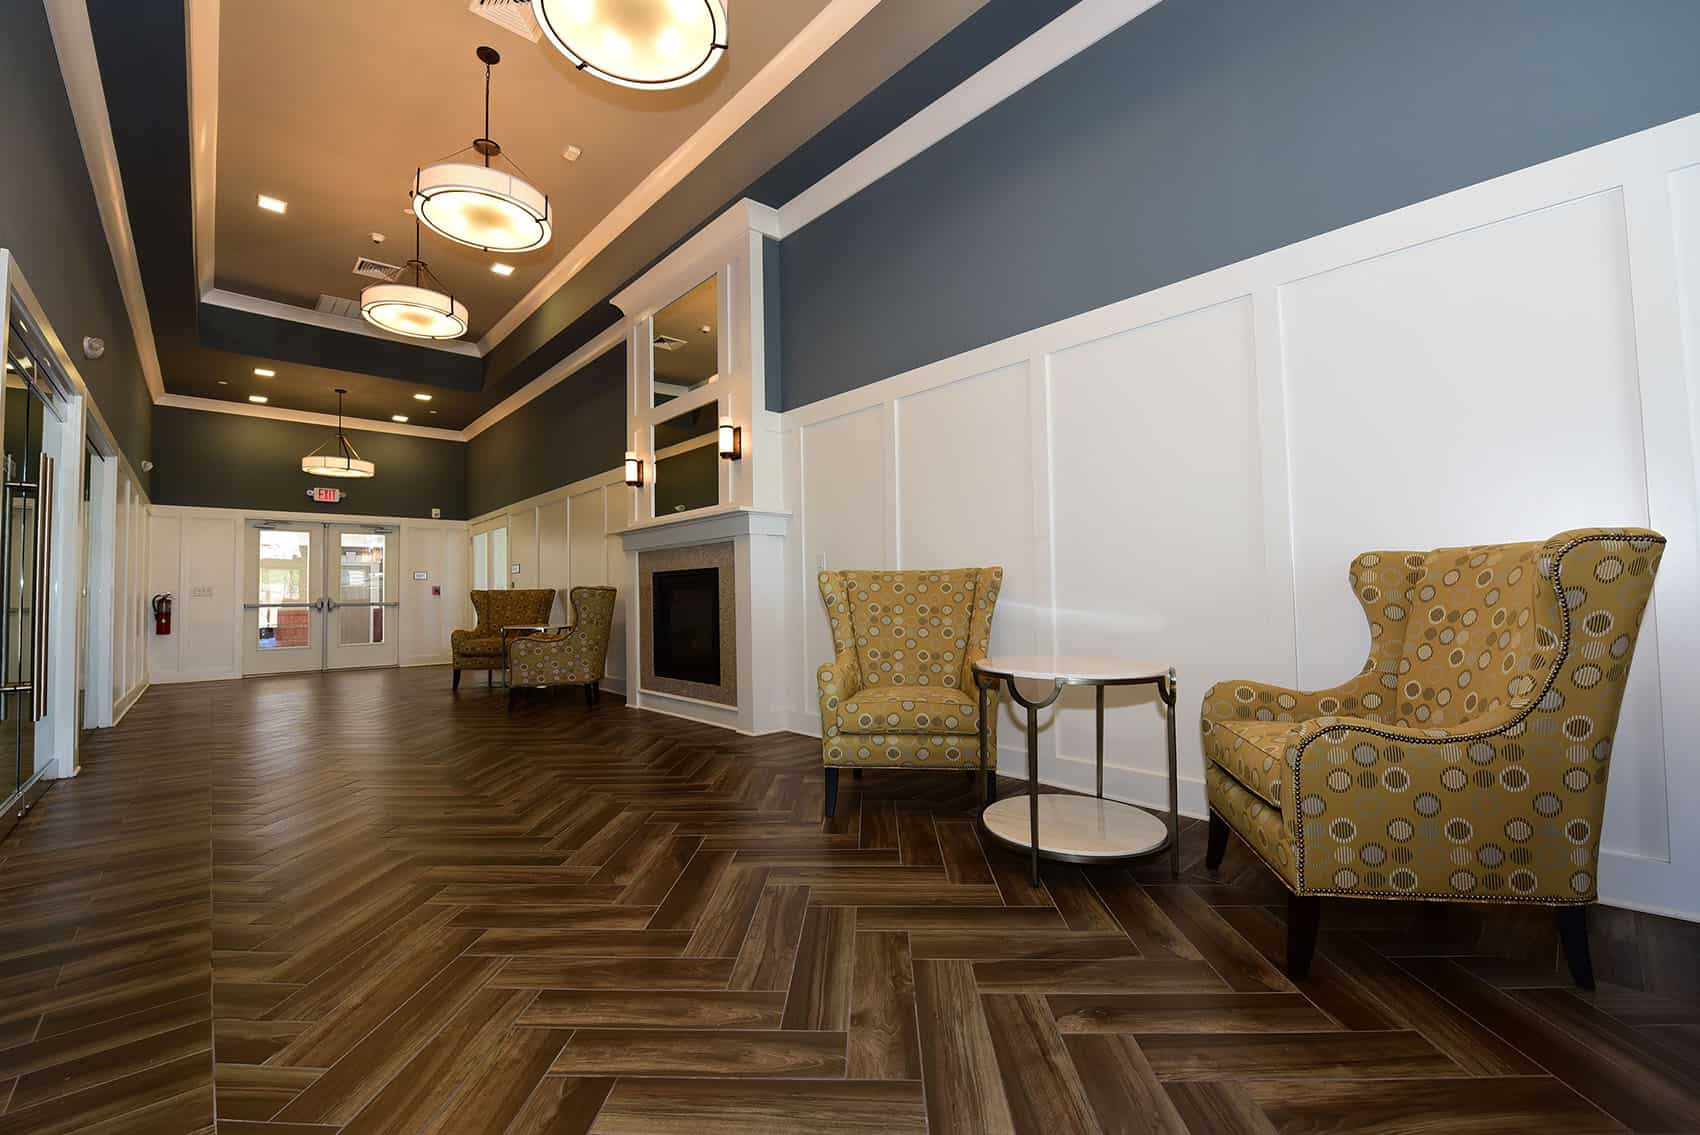 Interior of the clubhouse at the Gardens at Jackson Twenty-One with tiled floors, fireplace, and yellow chairs.